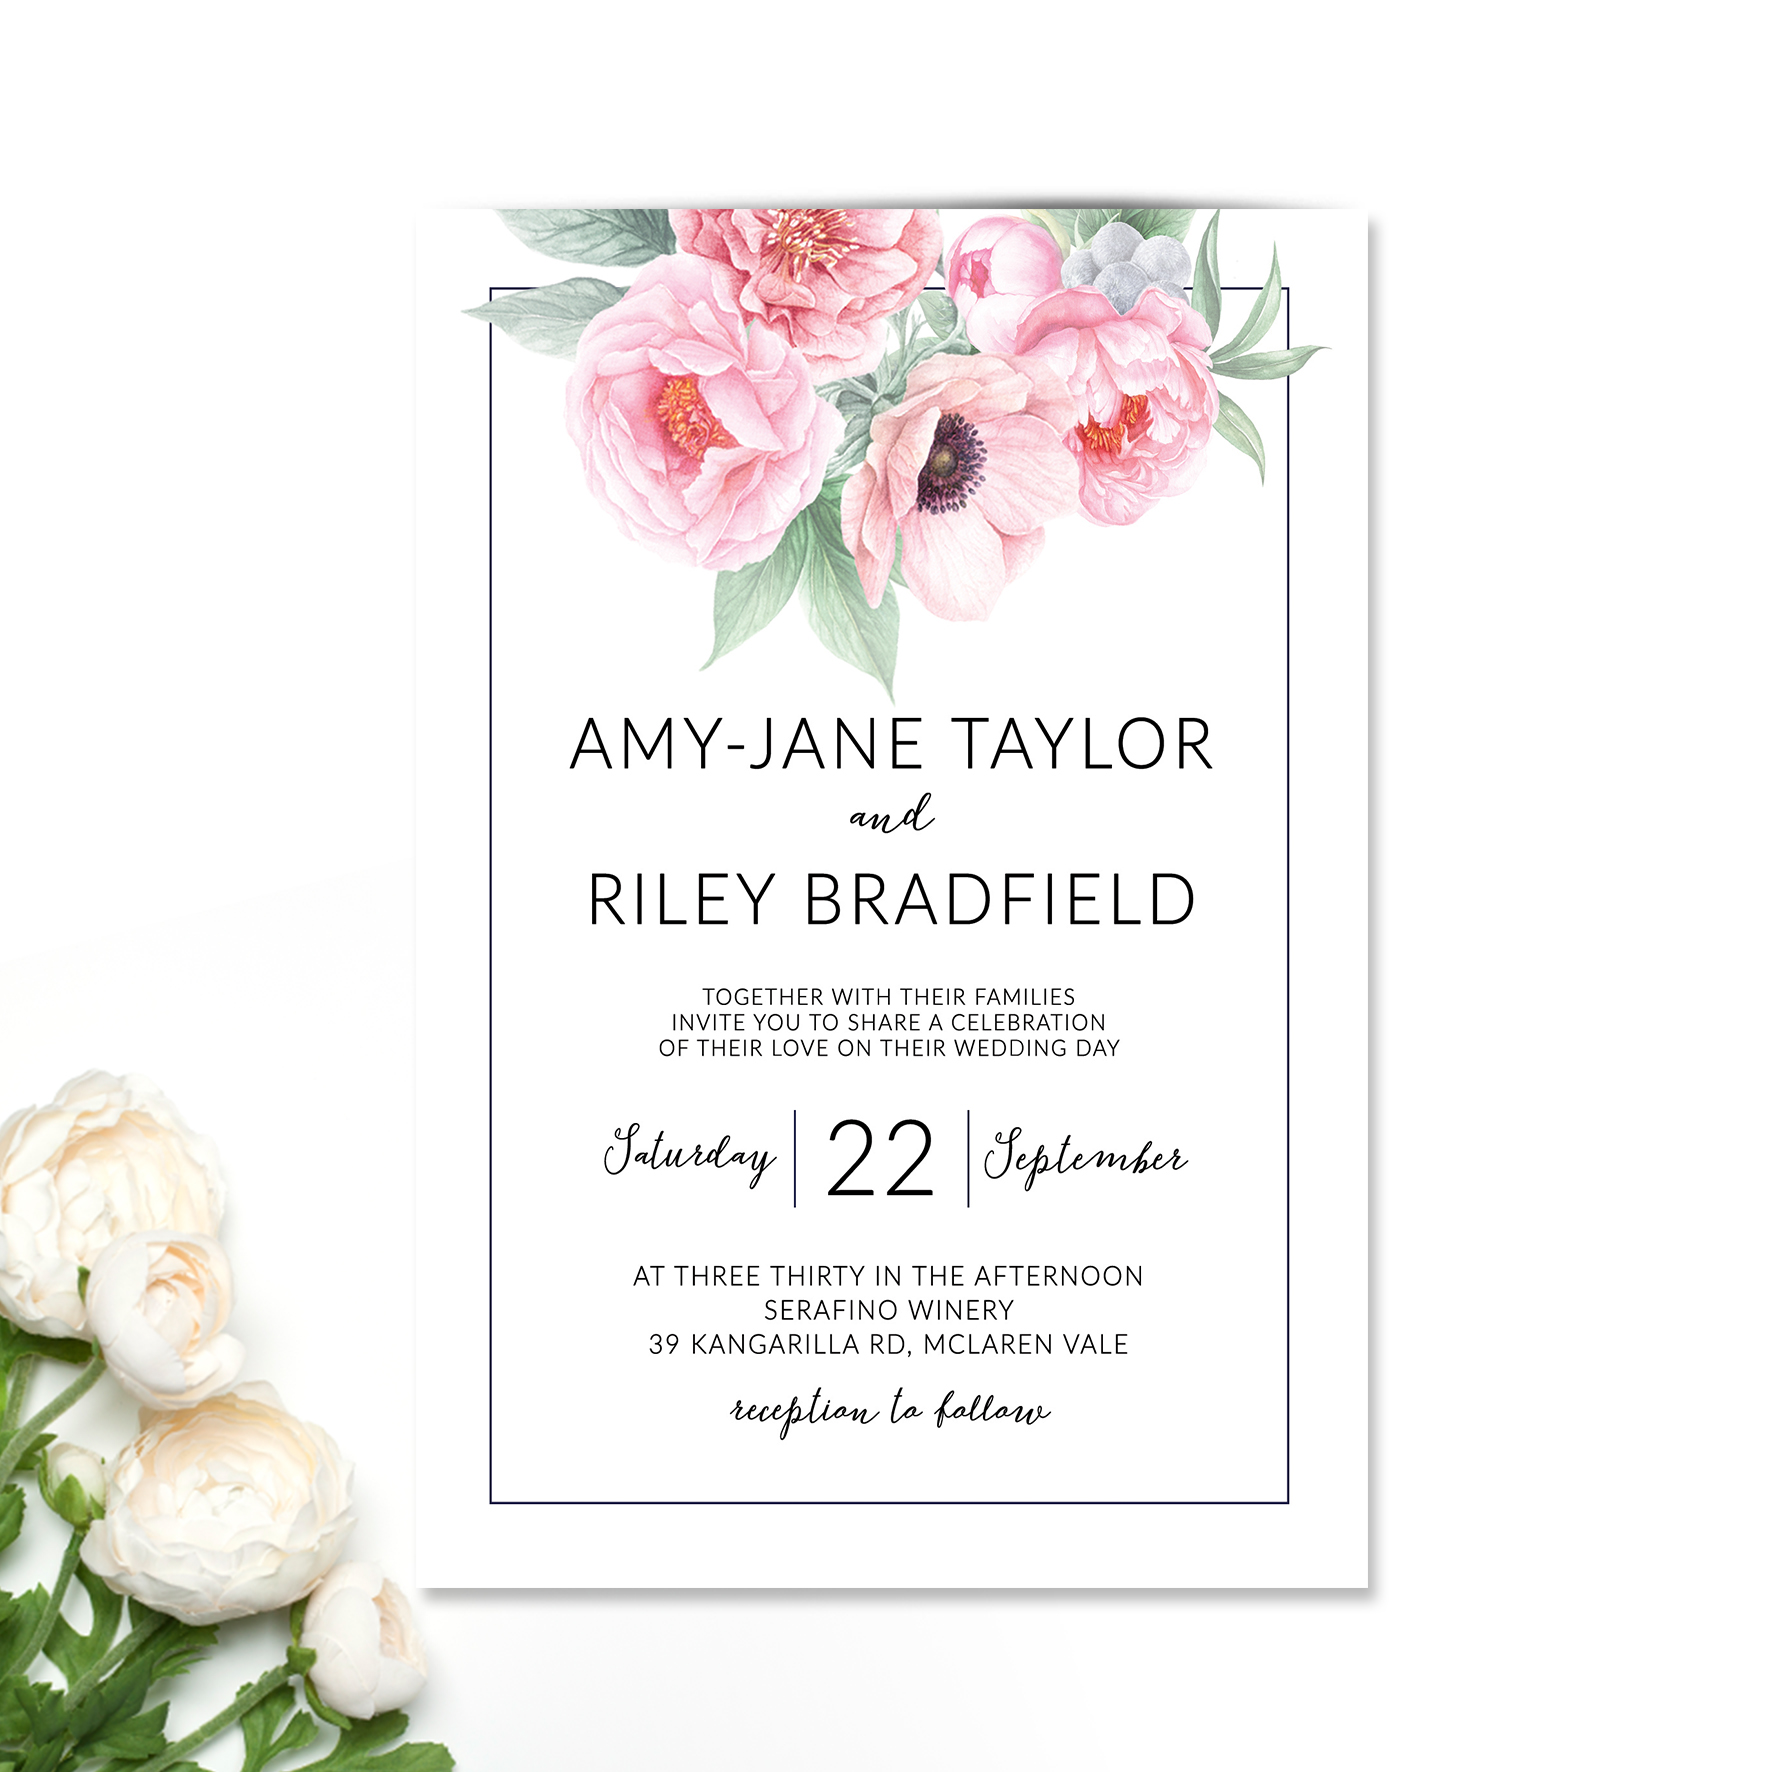 Amy-Jane + Riley Wedding Invitation